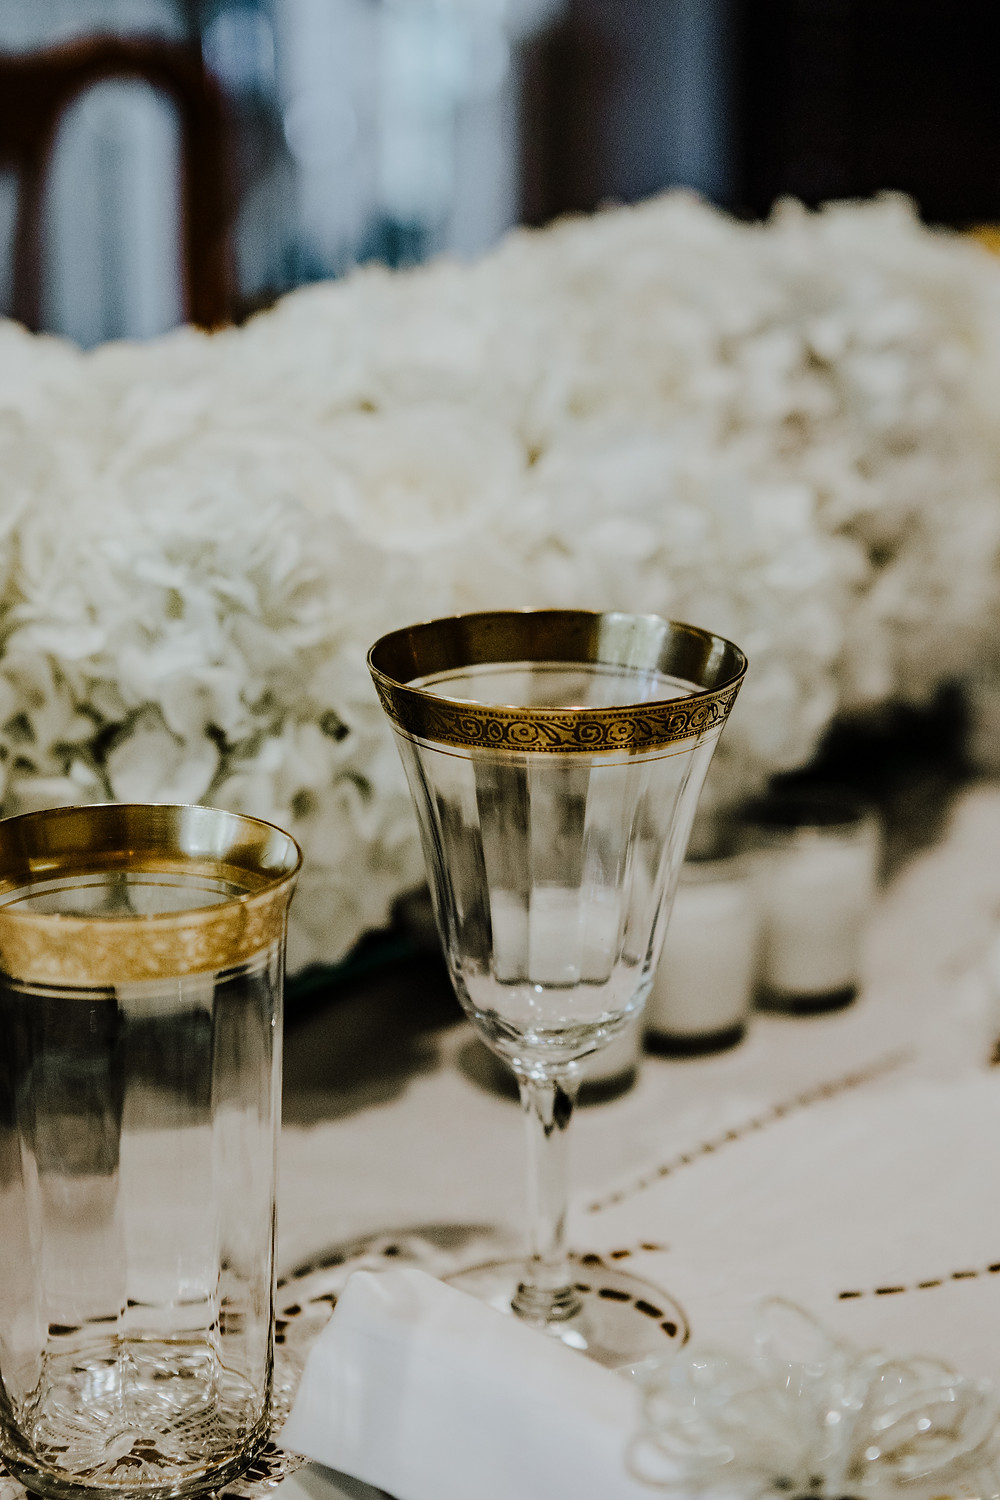 home elopement photo by Little Blue Bird Photography | wedding photographer in West Bloomfield, Michigan